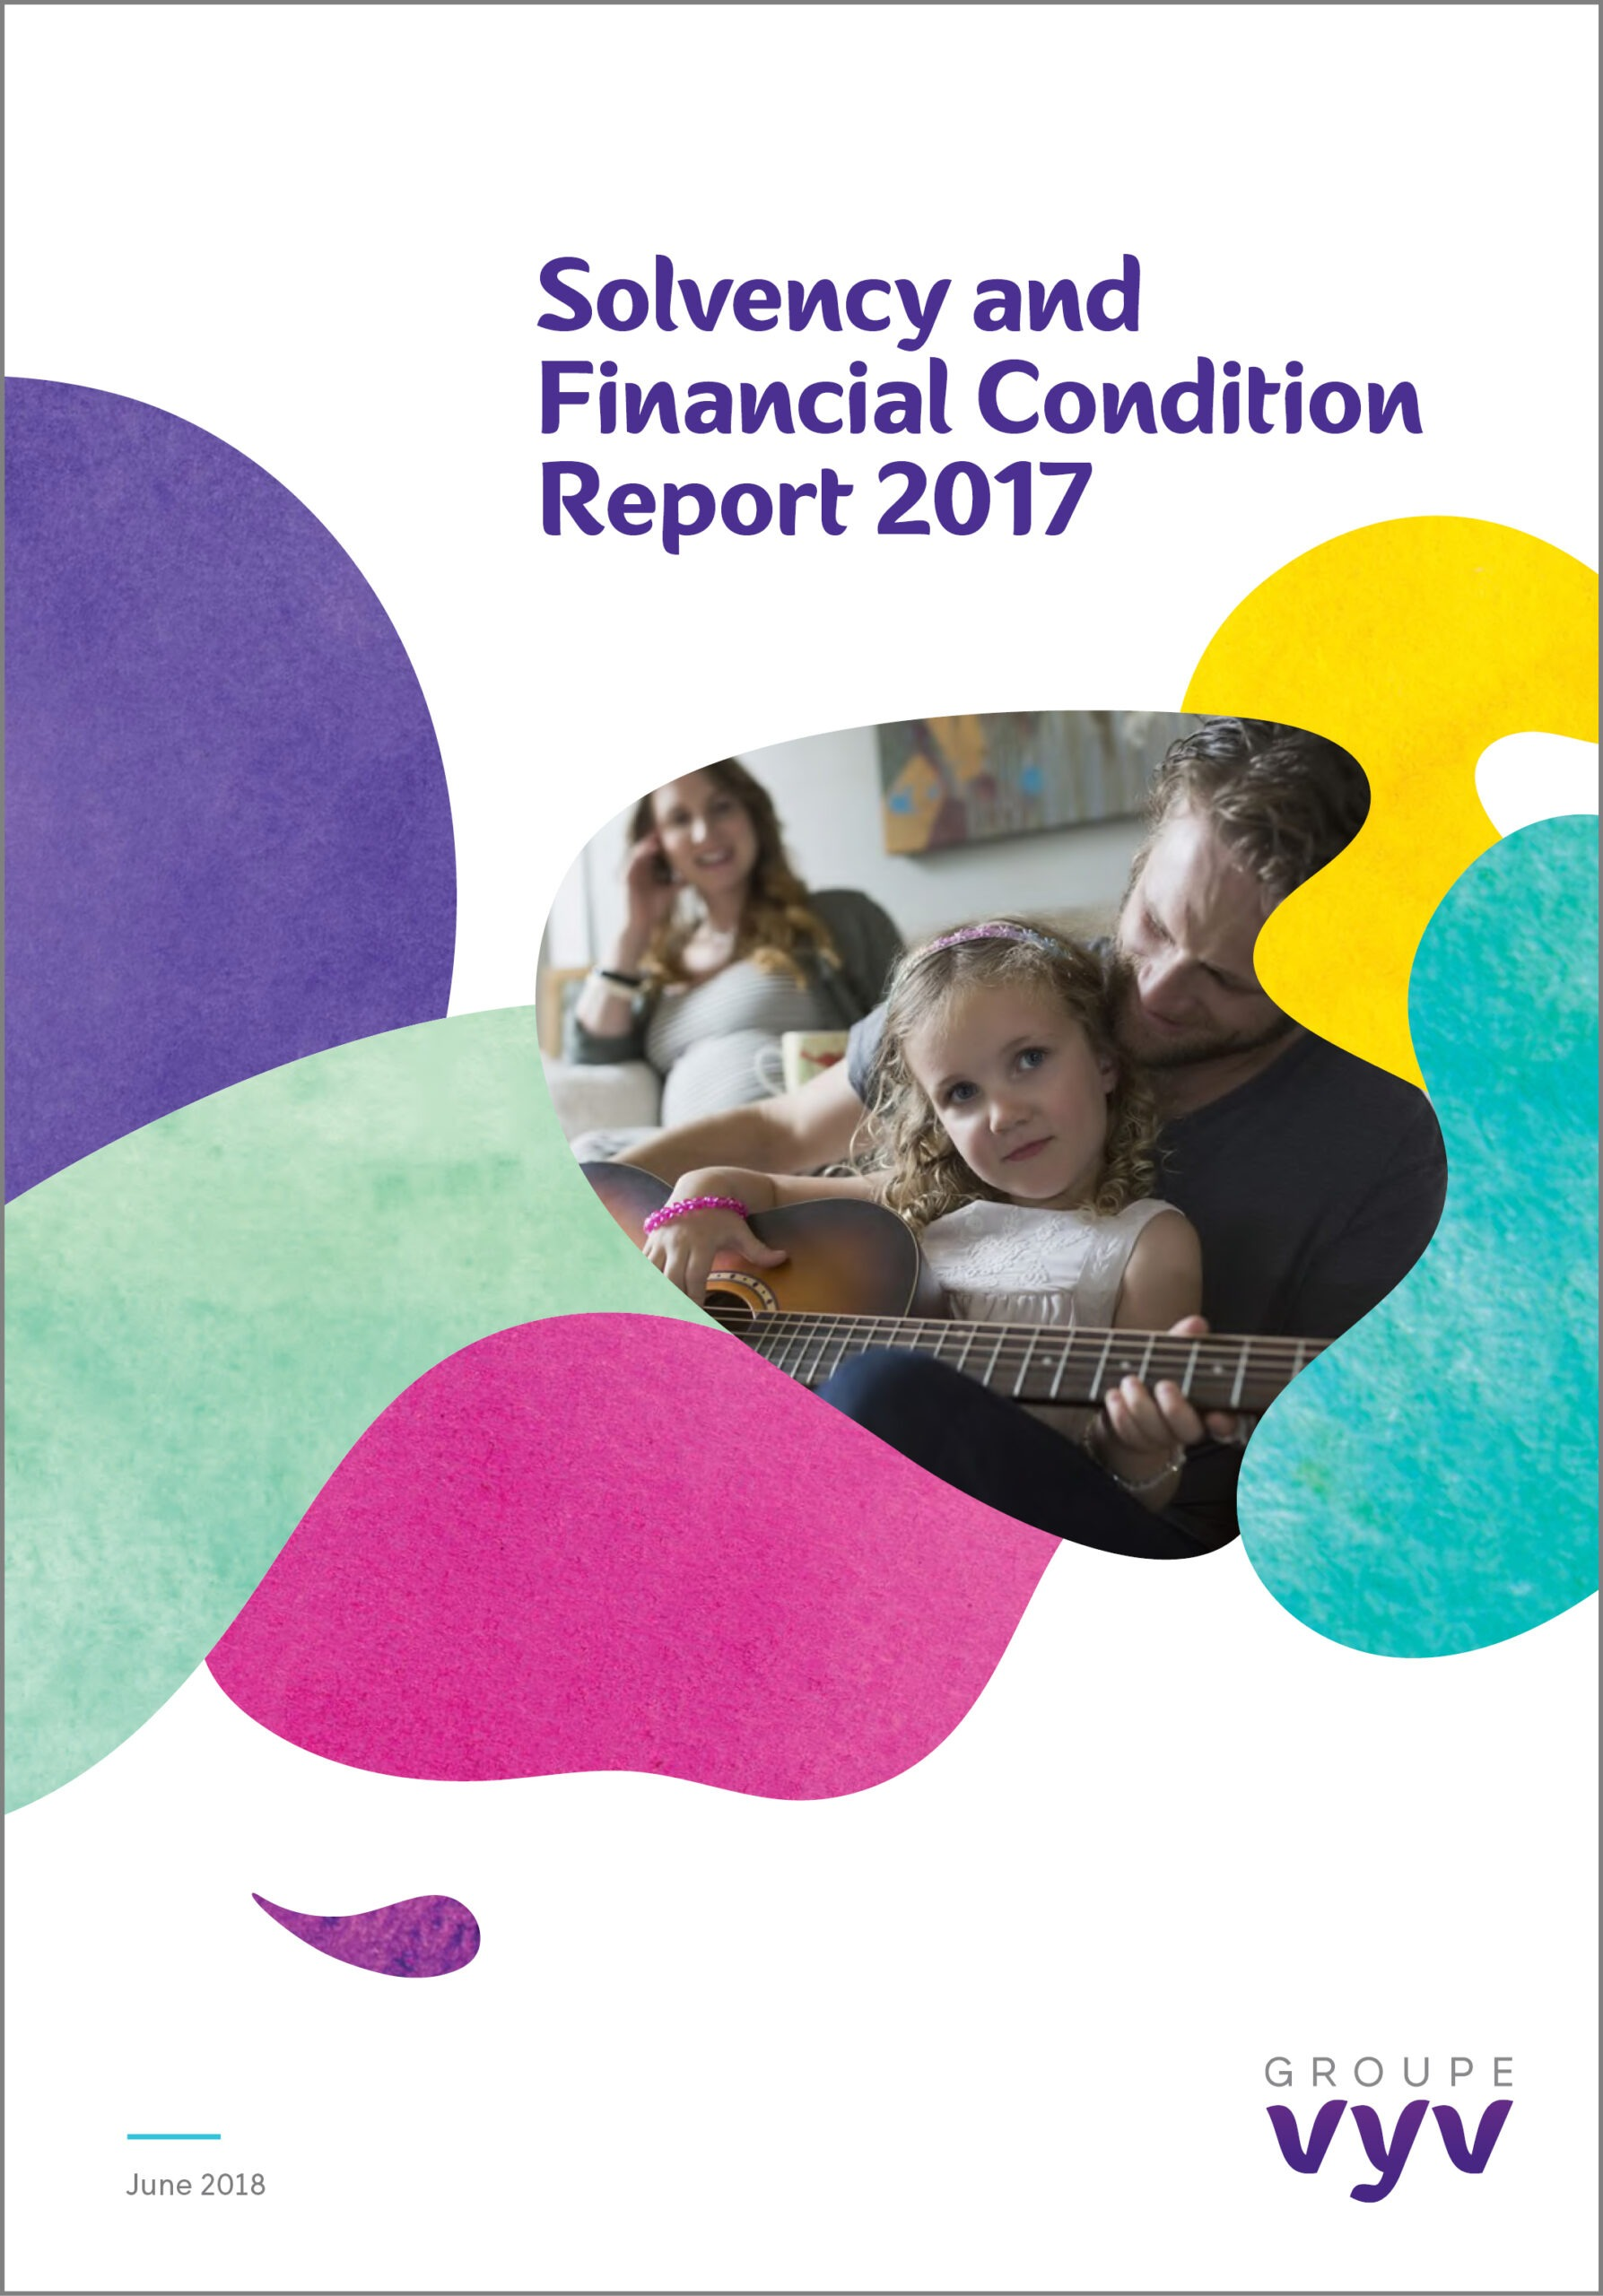 Solvency and Financial Condition Report 2017